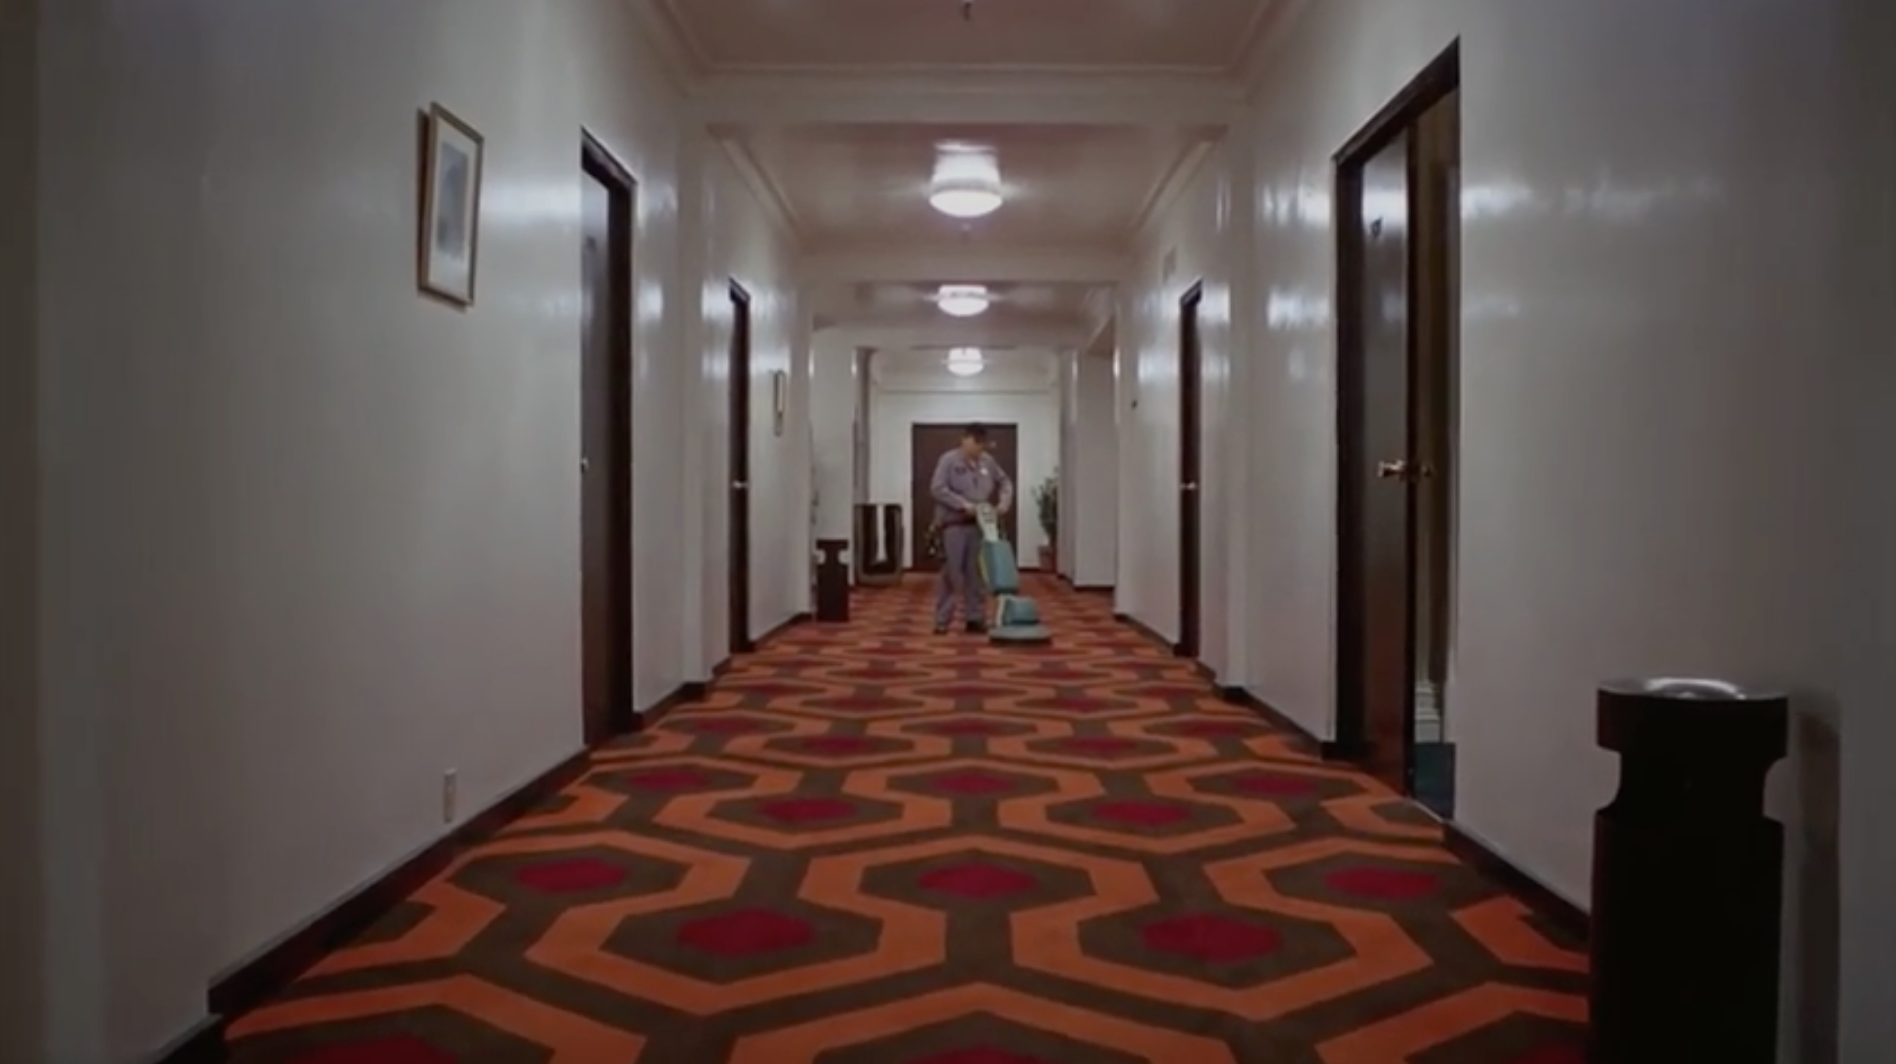 Staff clean and tidy the Overlook Hotel in created by Wieden+Kennedy's advert for the Academy of Motion Pictures Museum